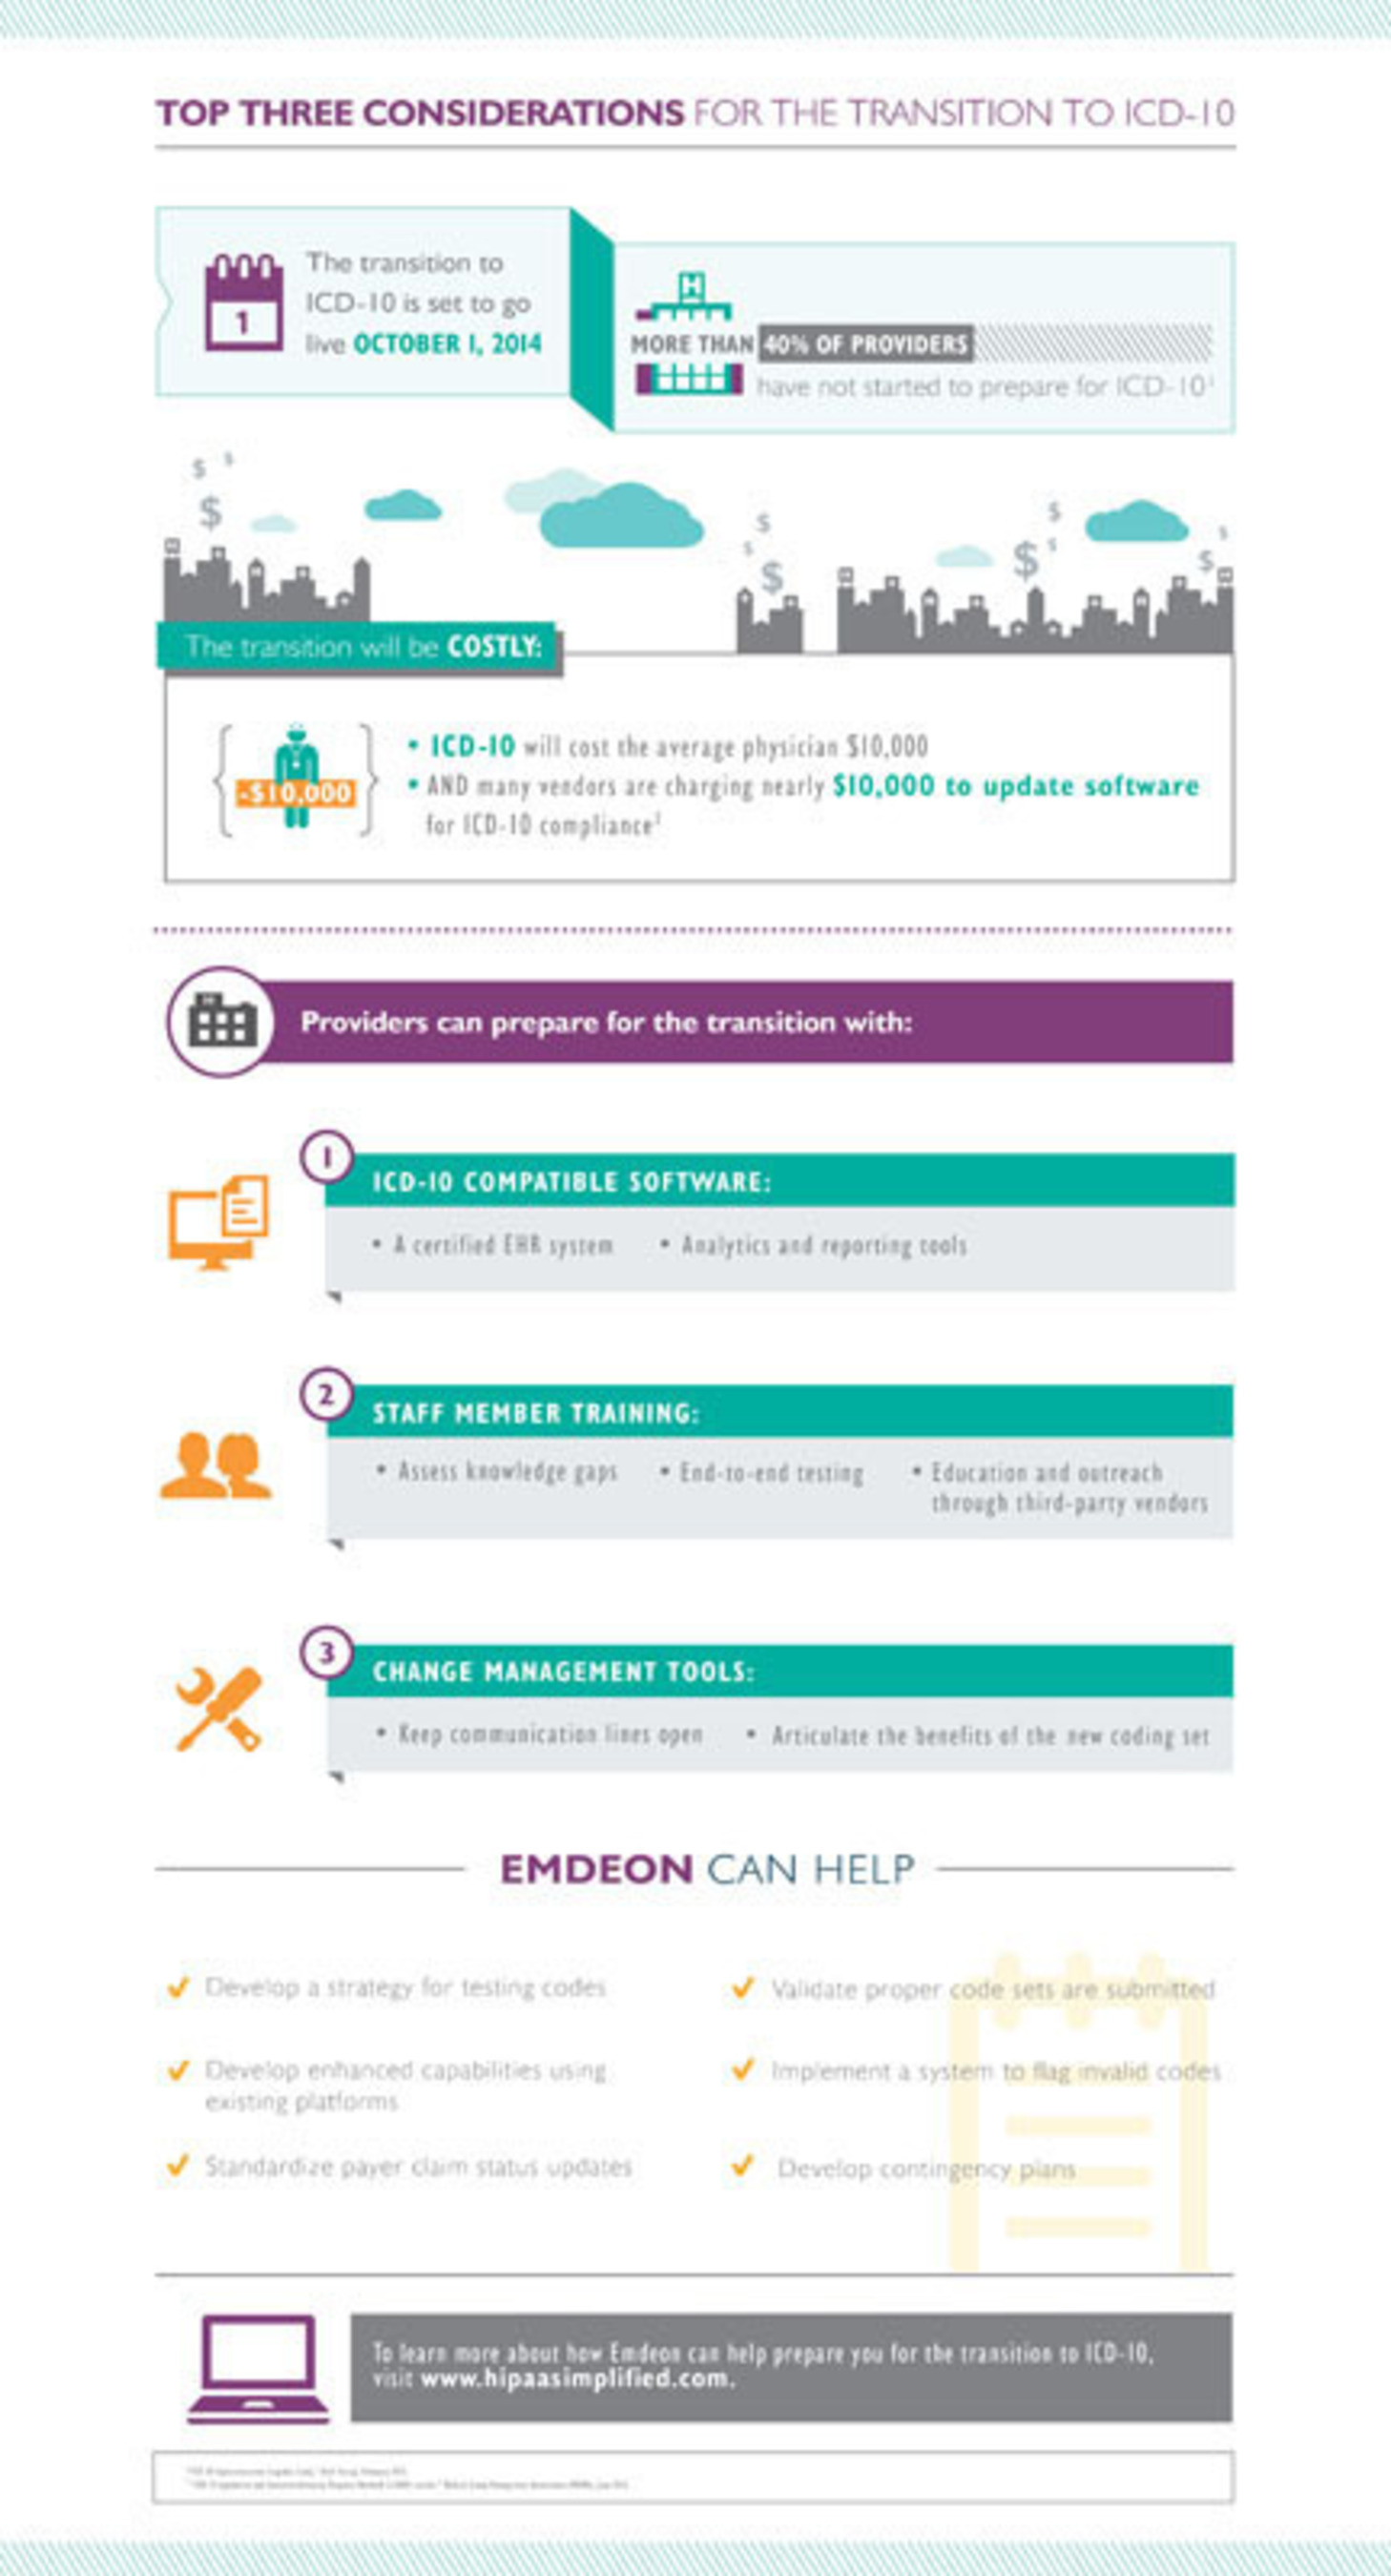 Emdeon Releases Top Three Considerations for the Transition to ICD-10. Whitepaper also available at www.HIPAASimplified.com.  (PRNewsFoto/Emdeon Inc.)